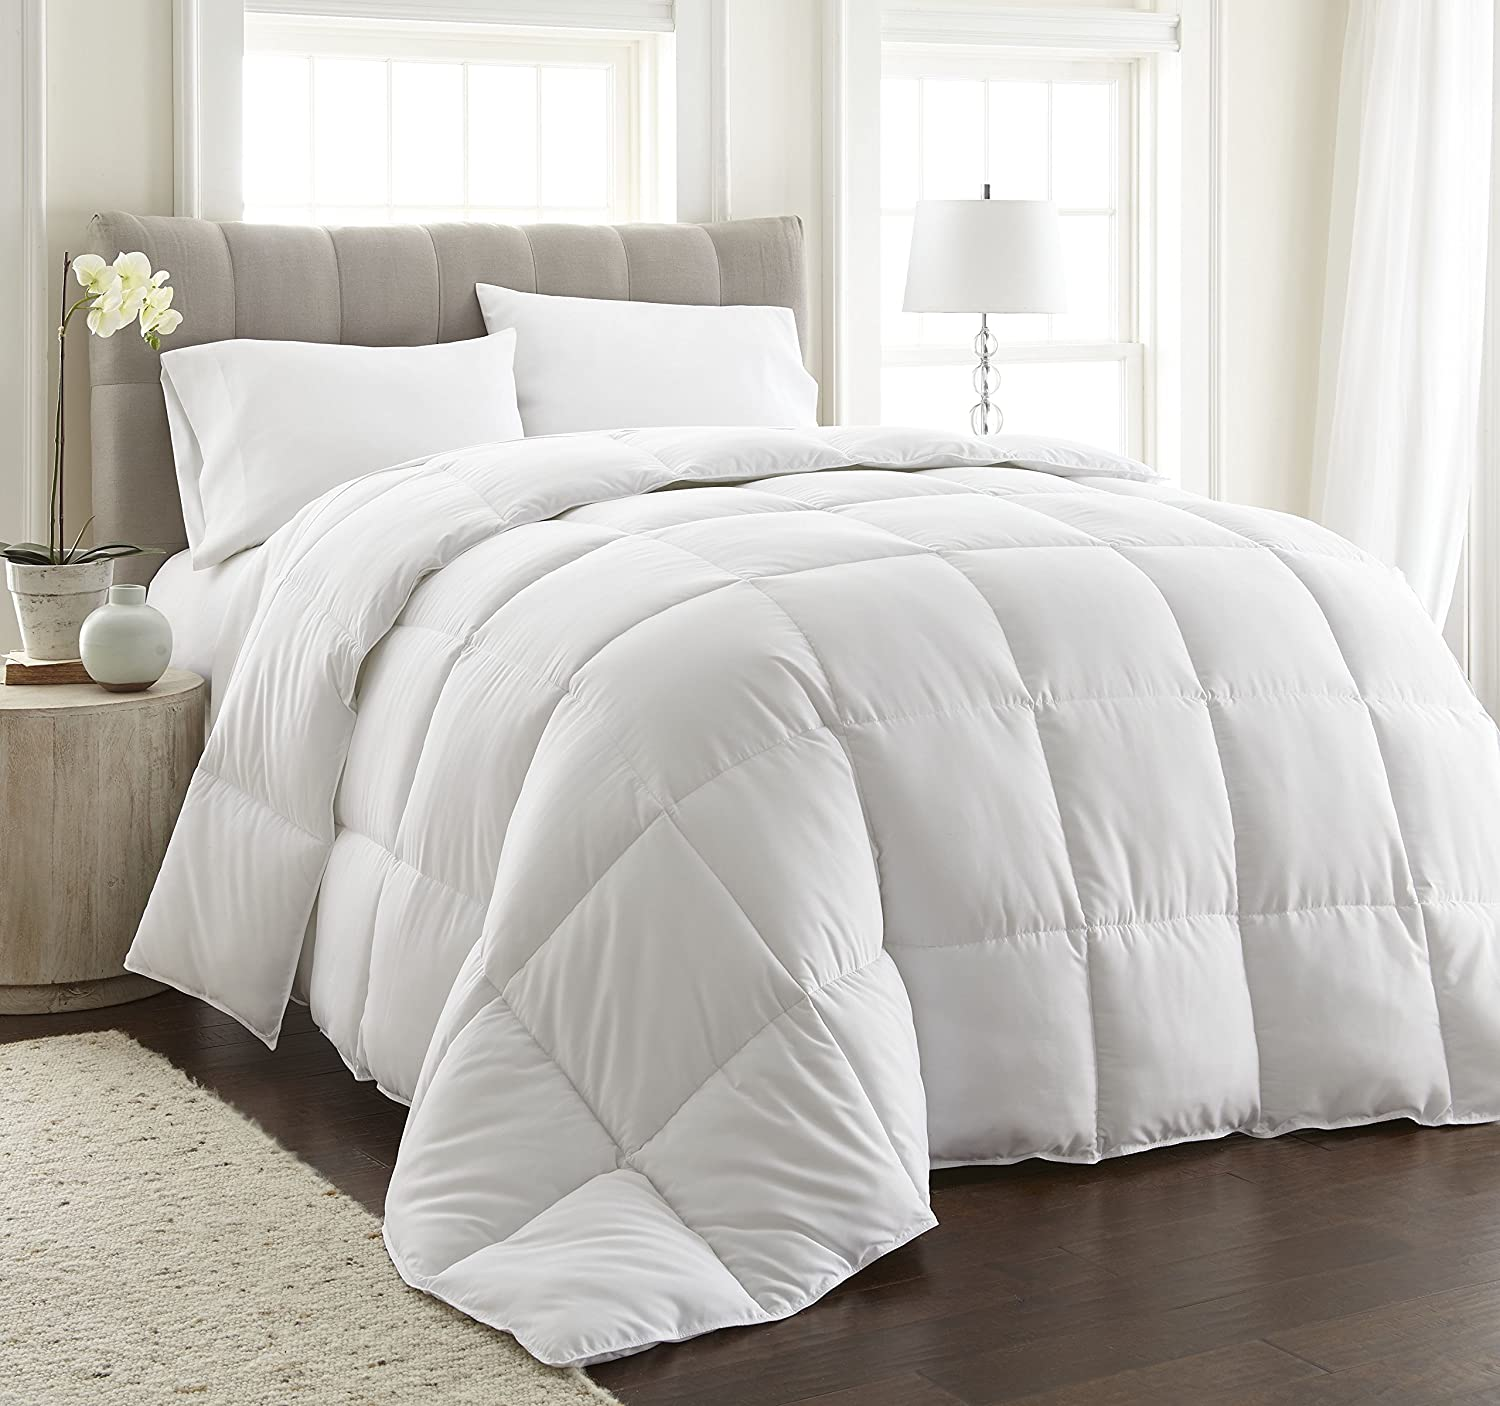 summer duvets queen bedding htm set sets luxury piece comforter antique imperial sheets discount four dress pillows